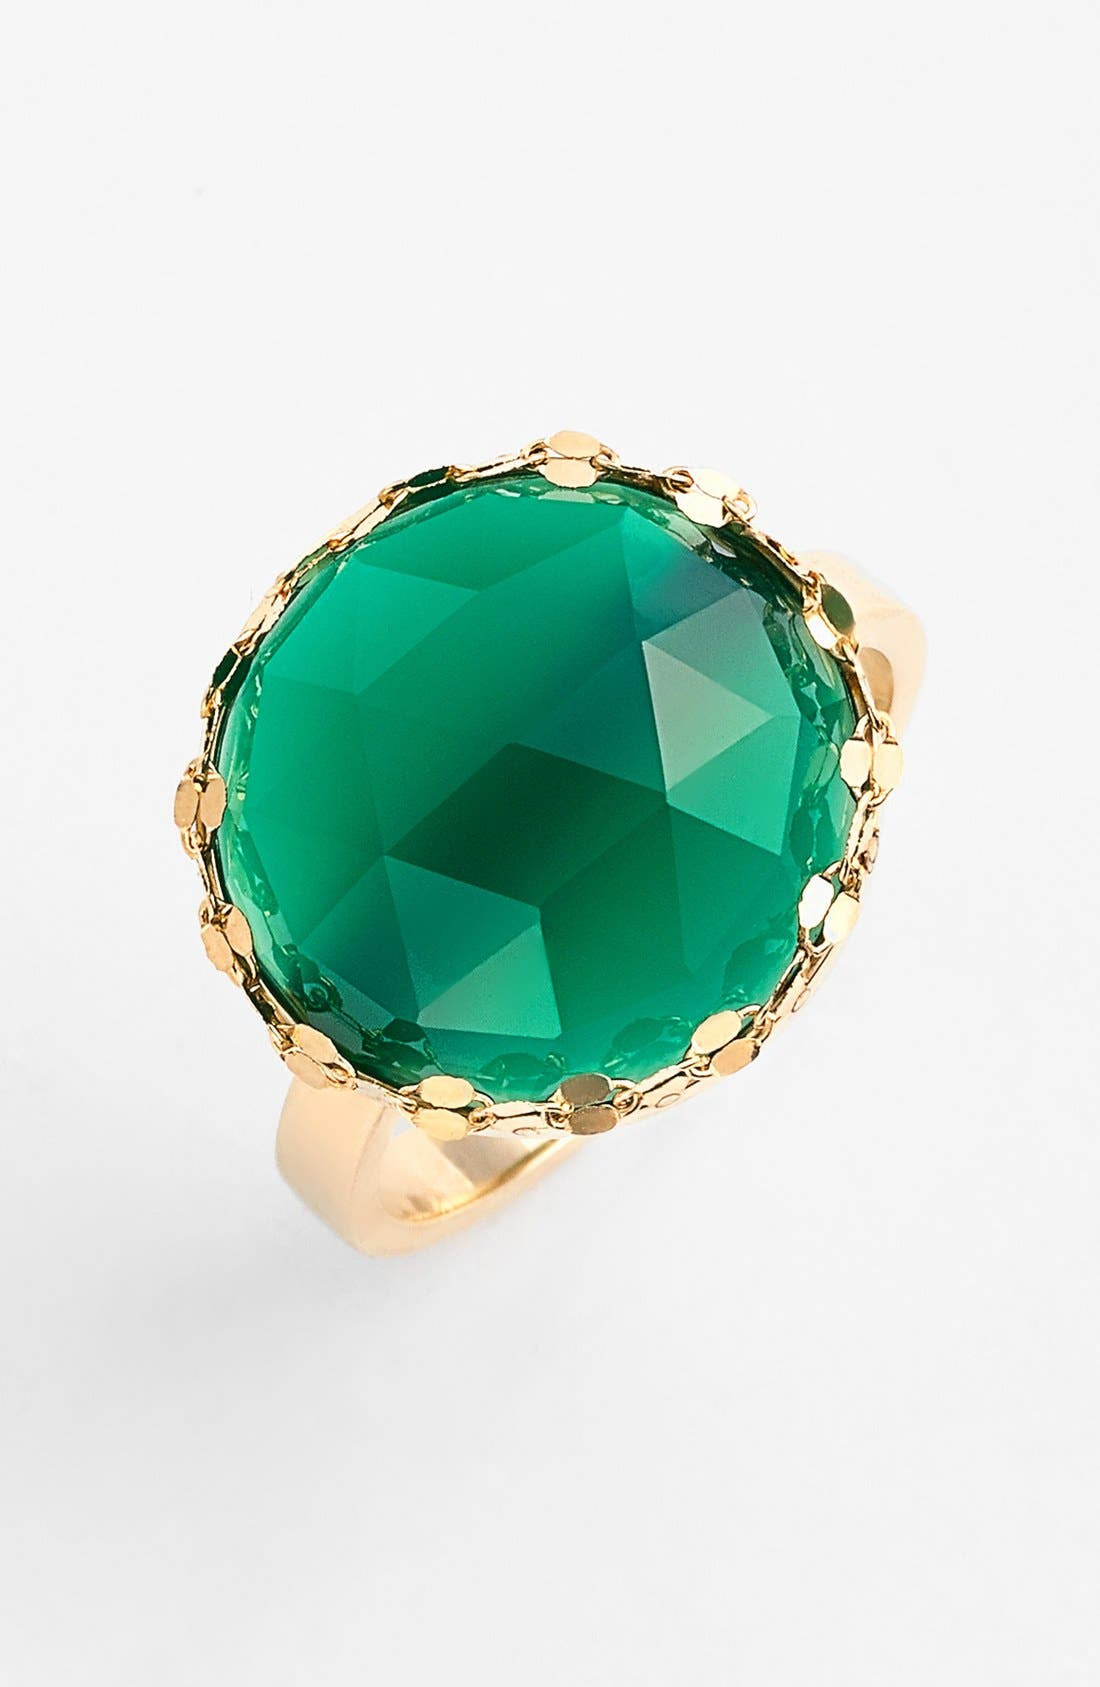 Alternate Image 1 Selected - Lana Jewelry 'Envy' Cocktail Ring